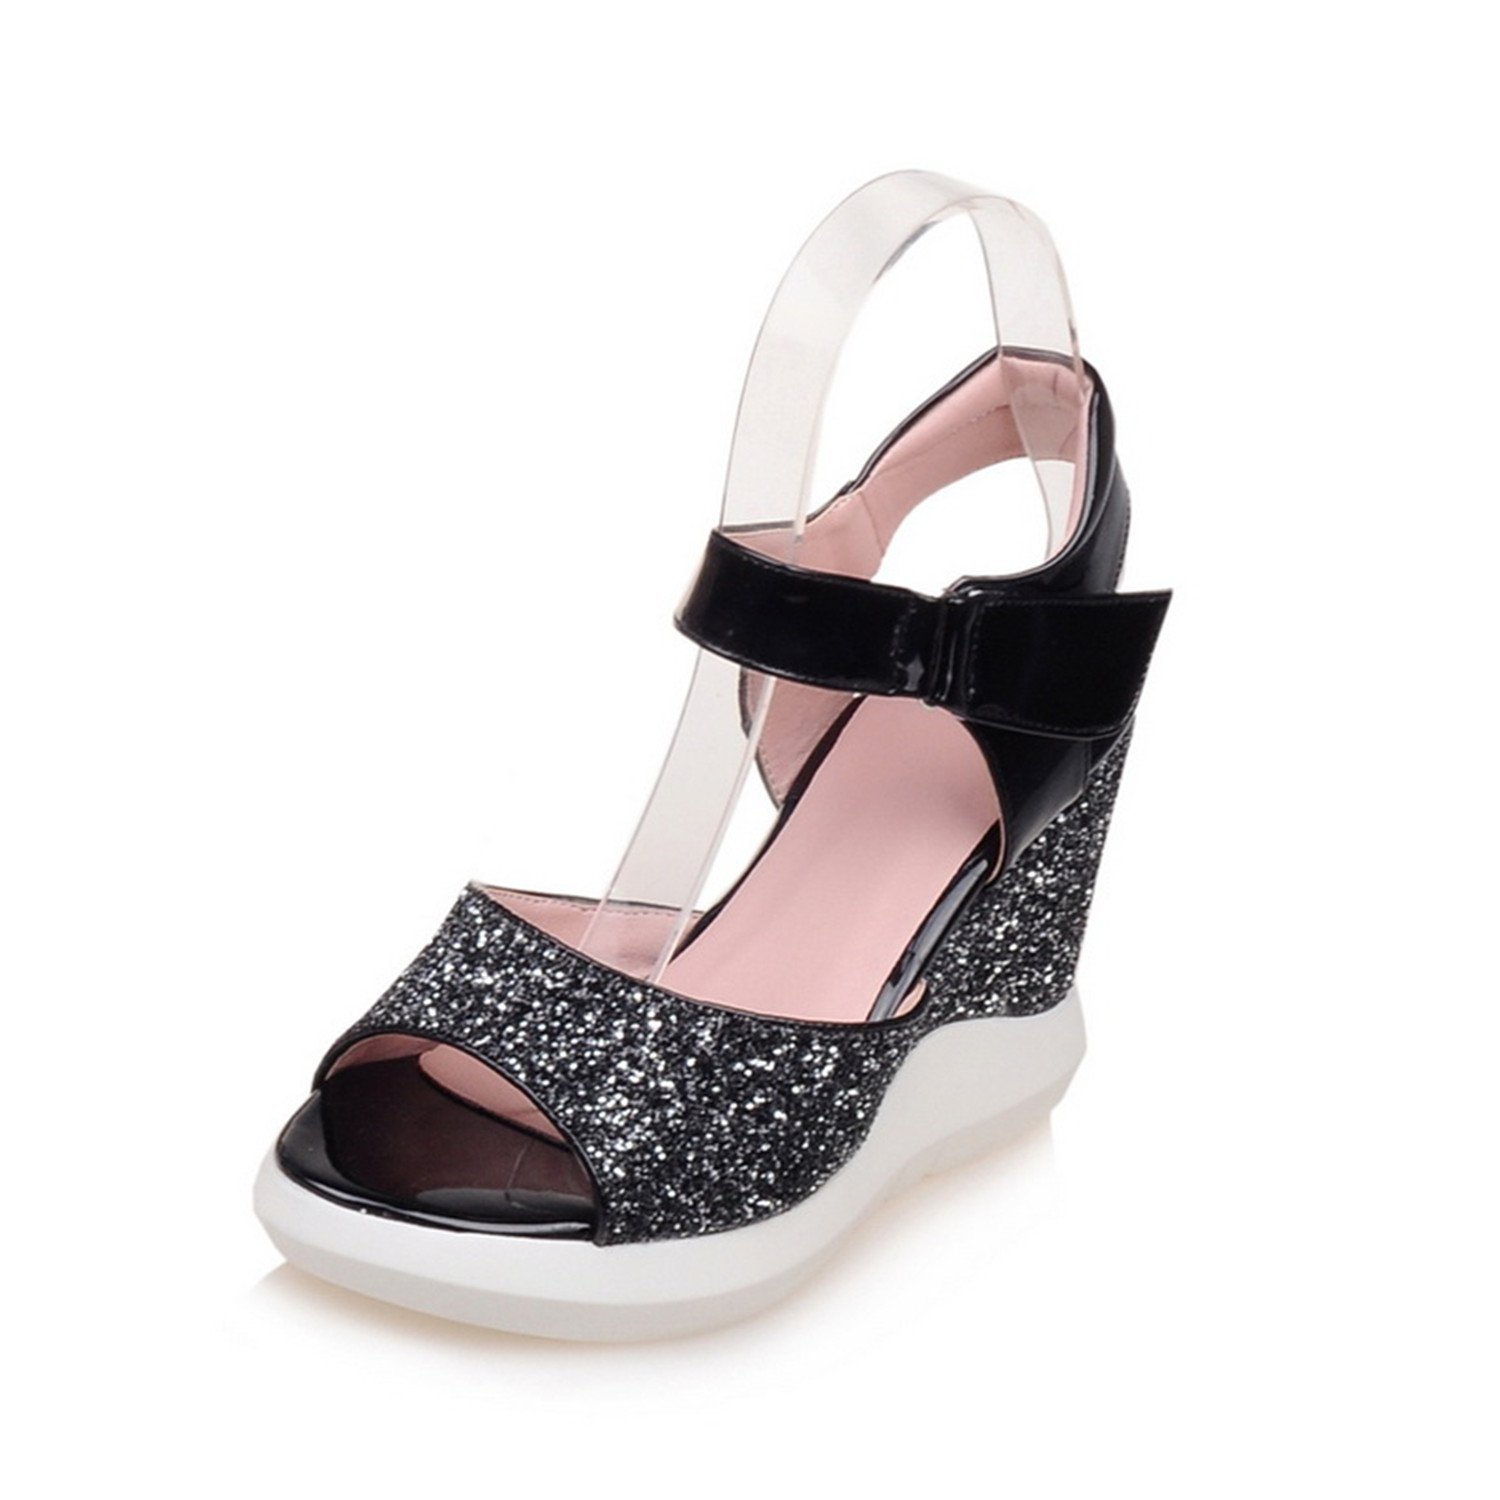 Esthesis High Heel Slippers Summer Platform Wedge Sandals Sequin Women Casual Sandals Comfort  7|Schwarz